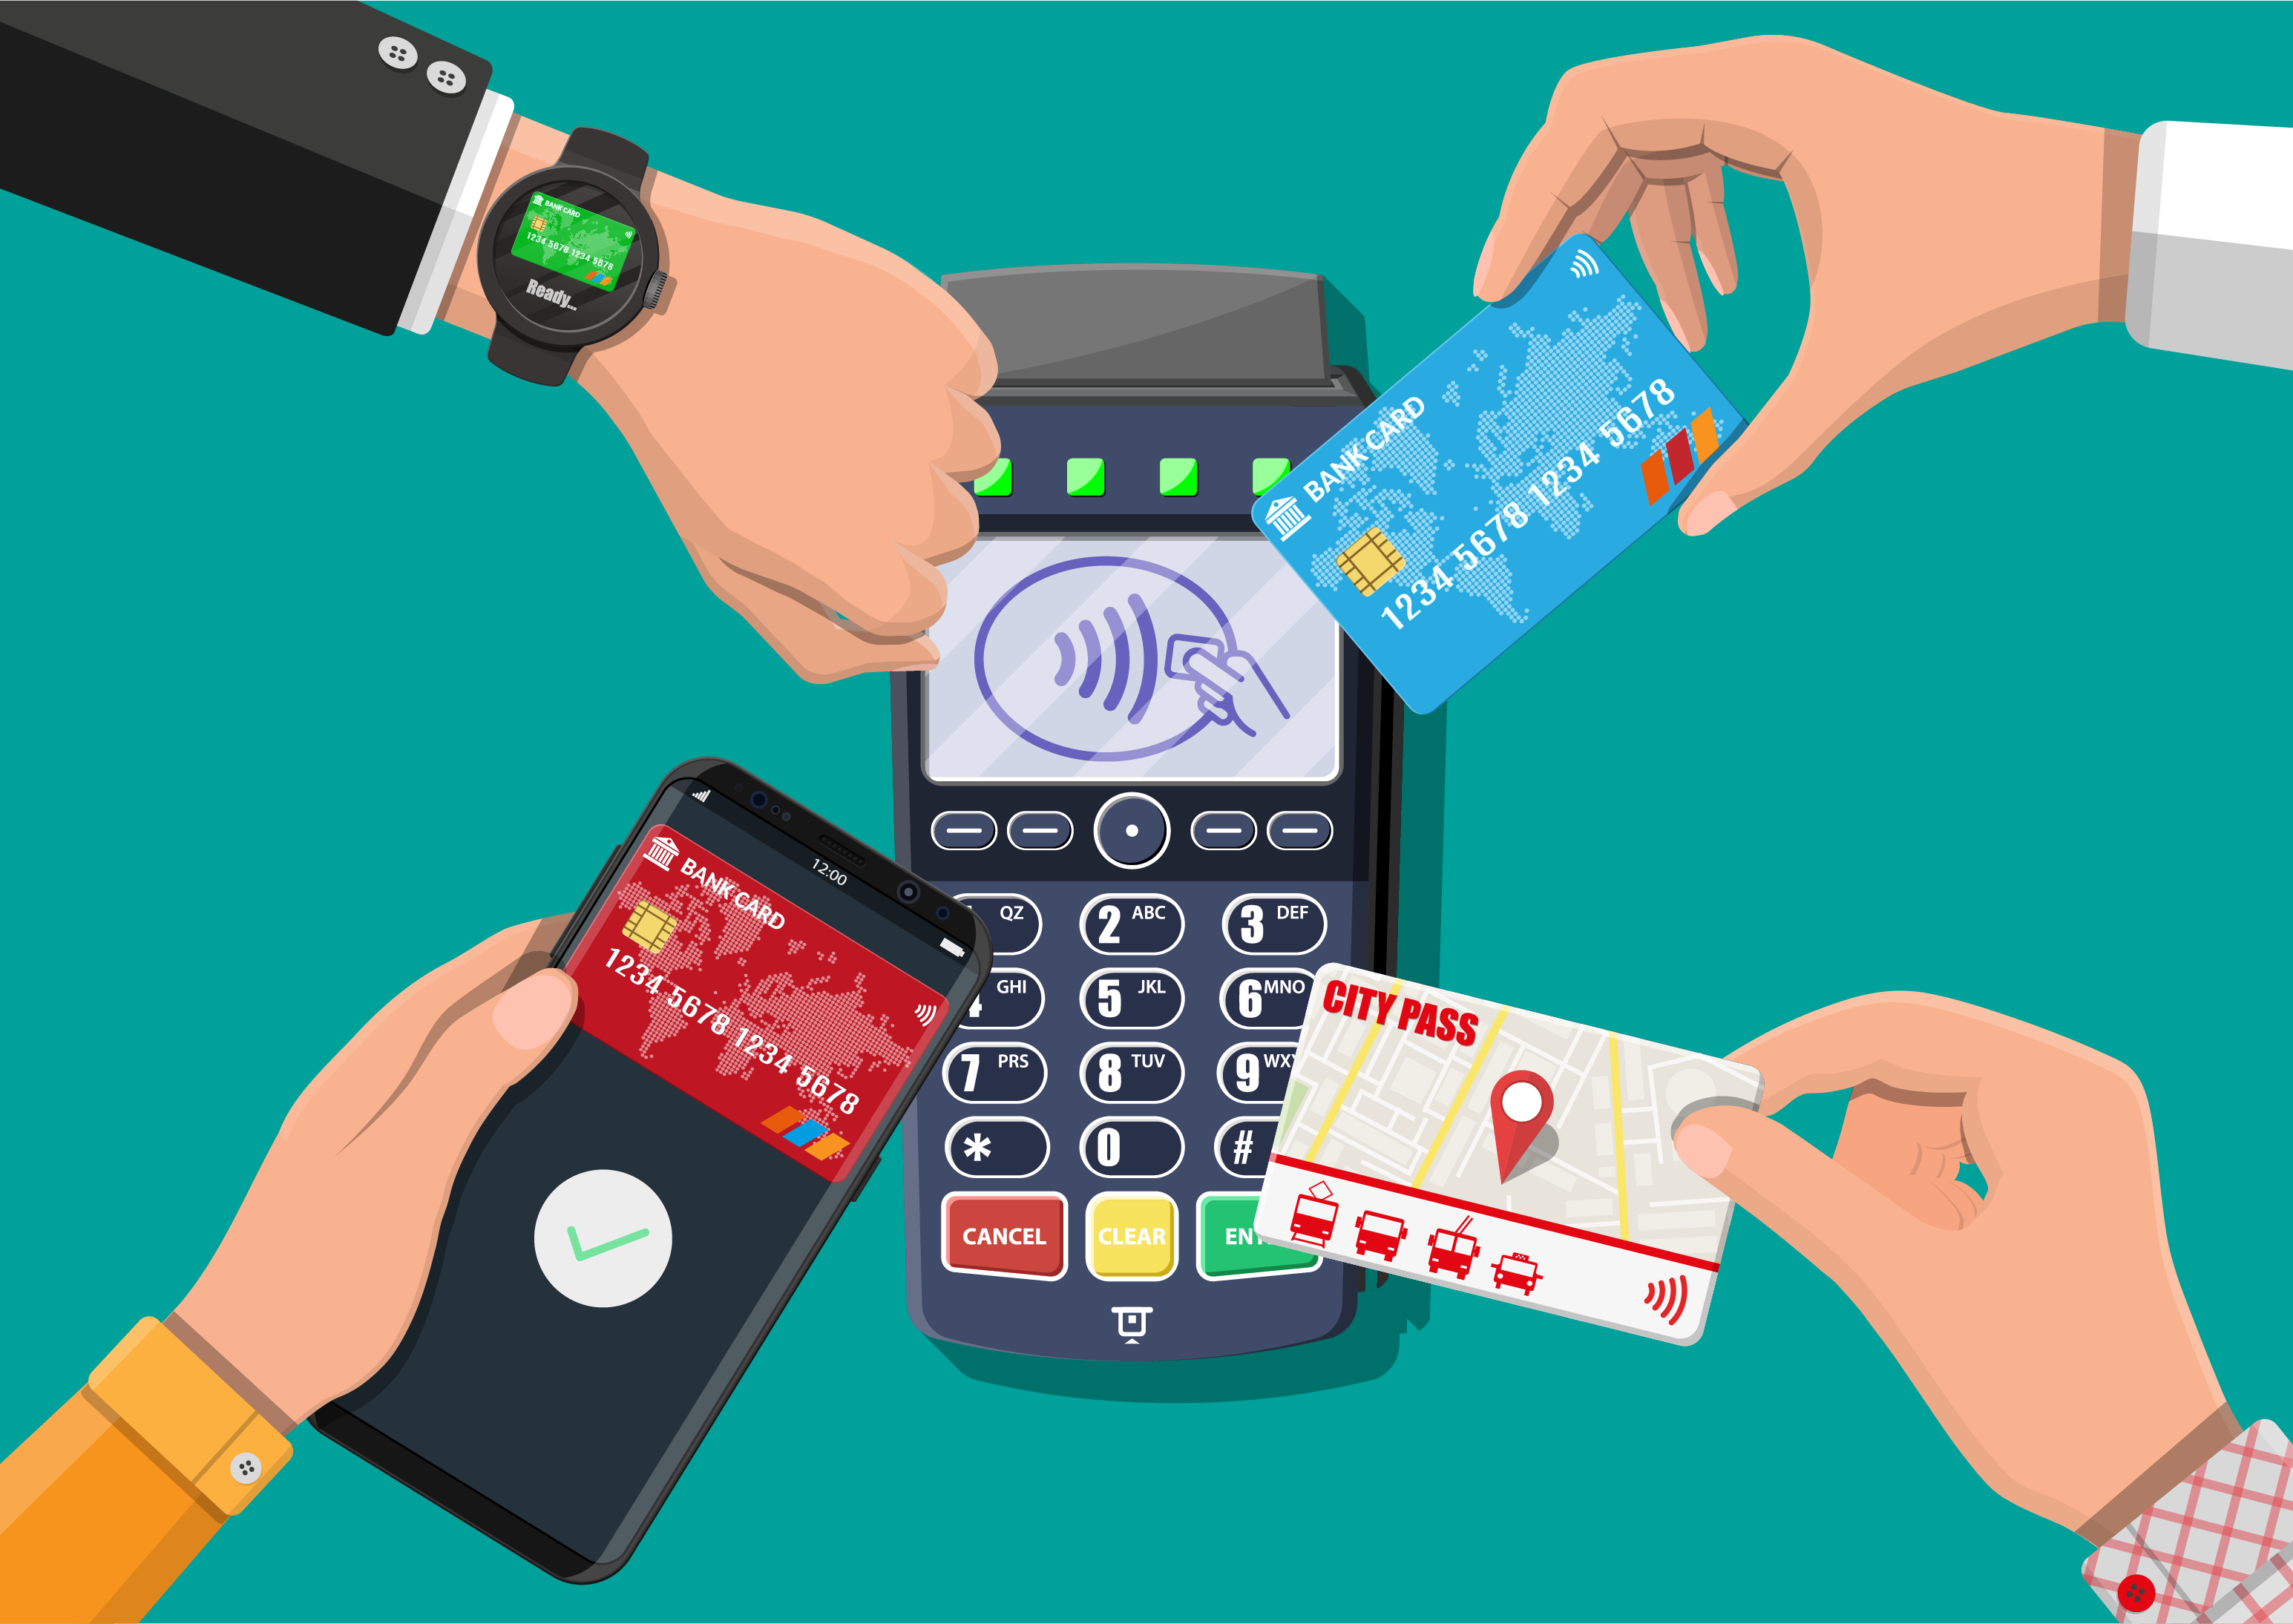 What are contactless payments and how do they work?